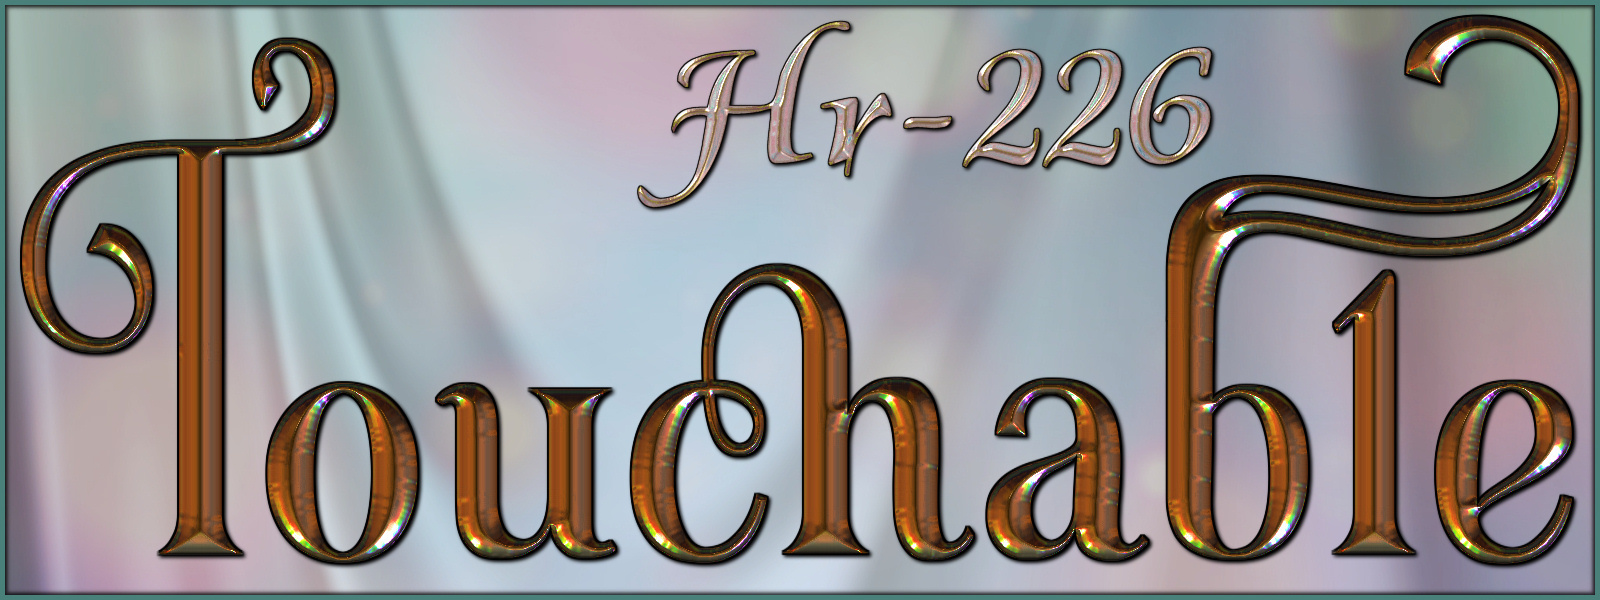 Touchable Hr-226 by -Wolfie-